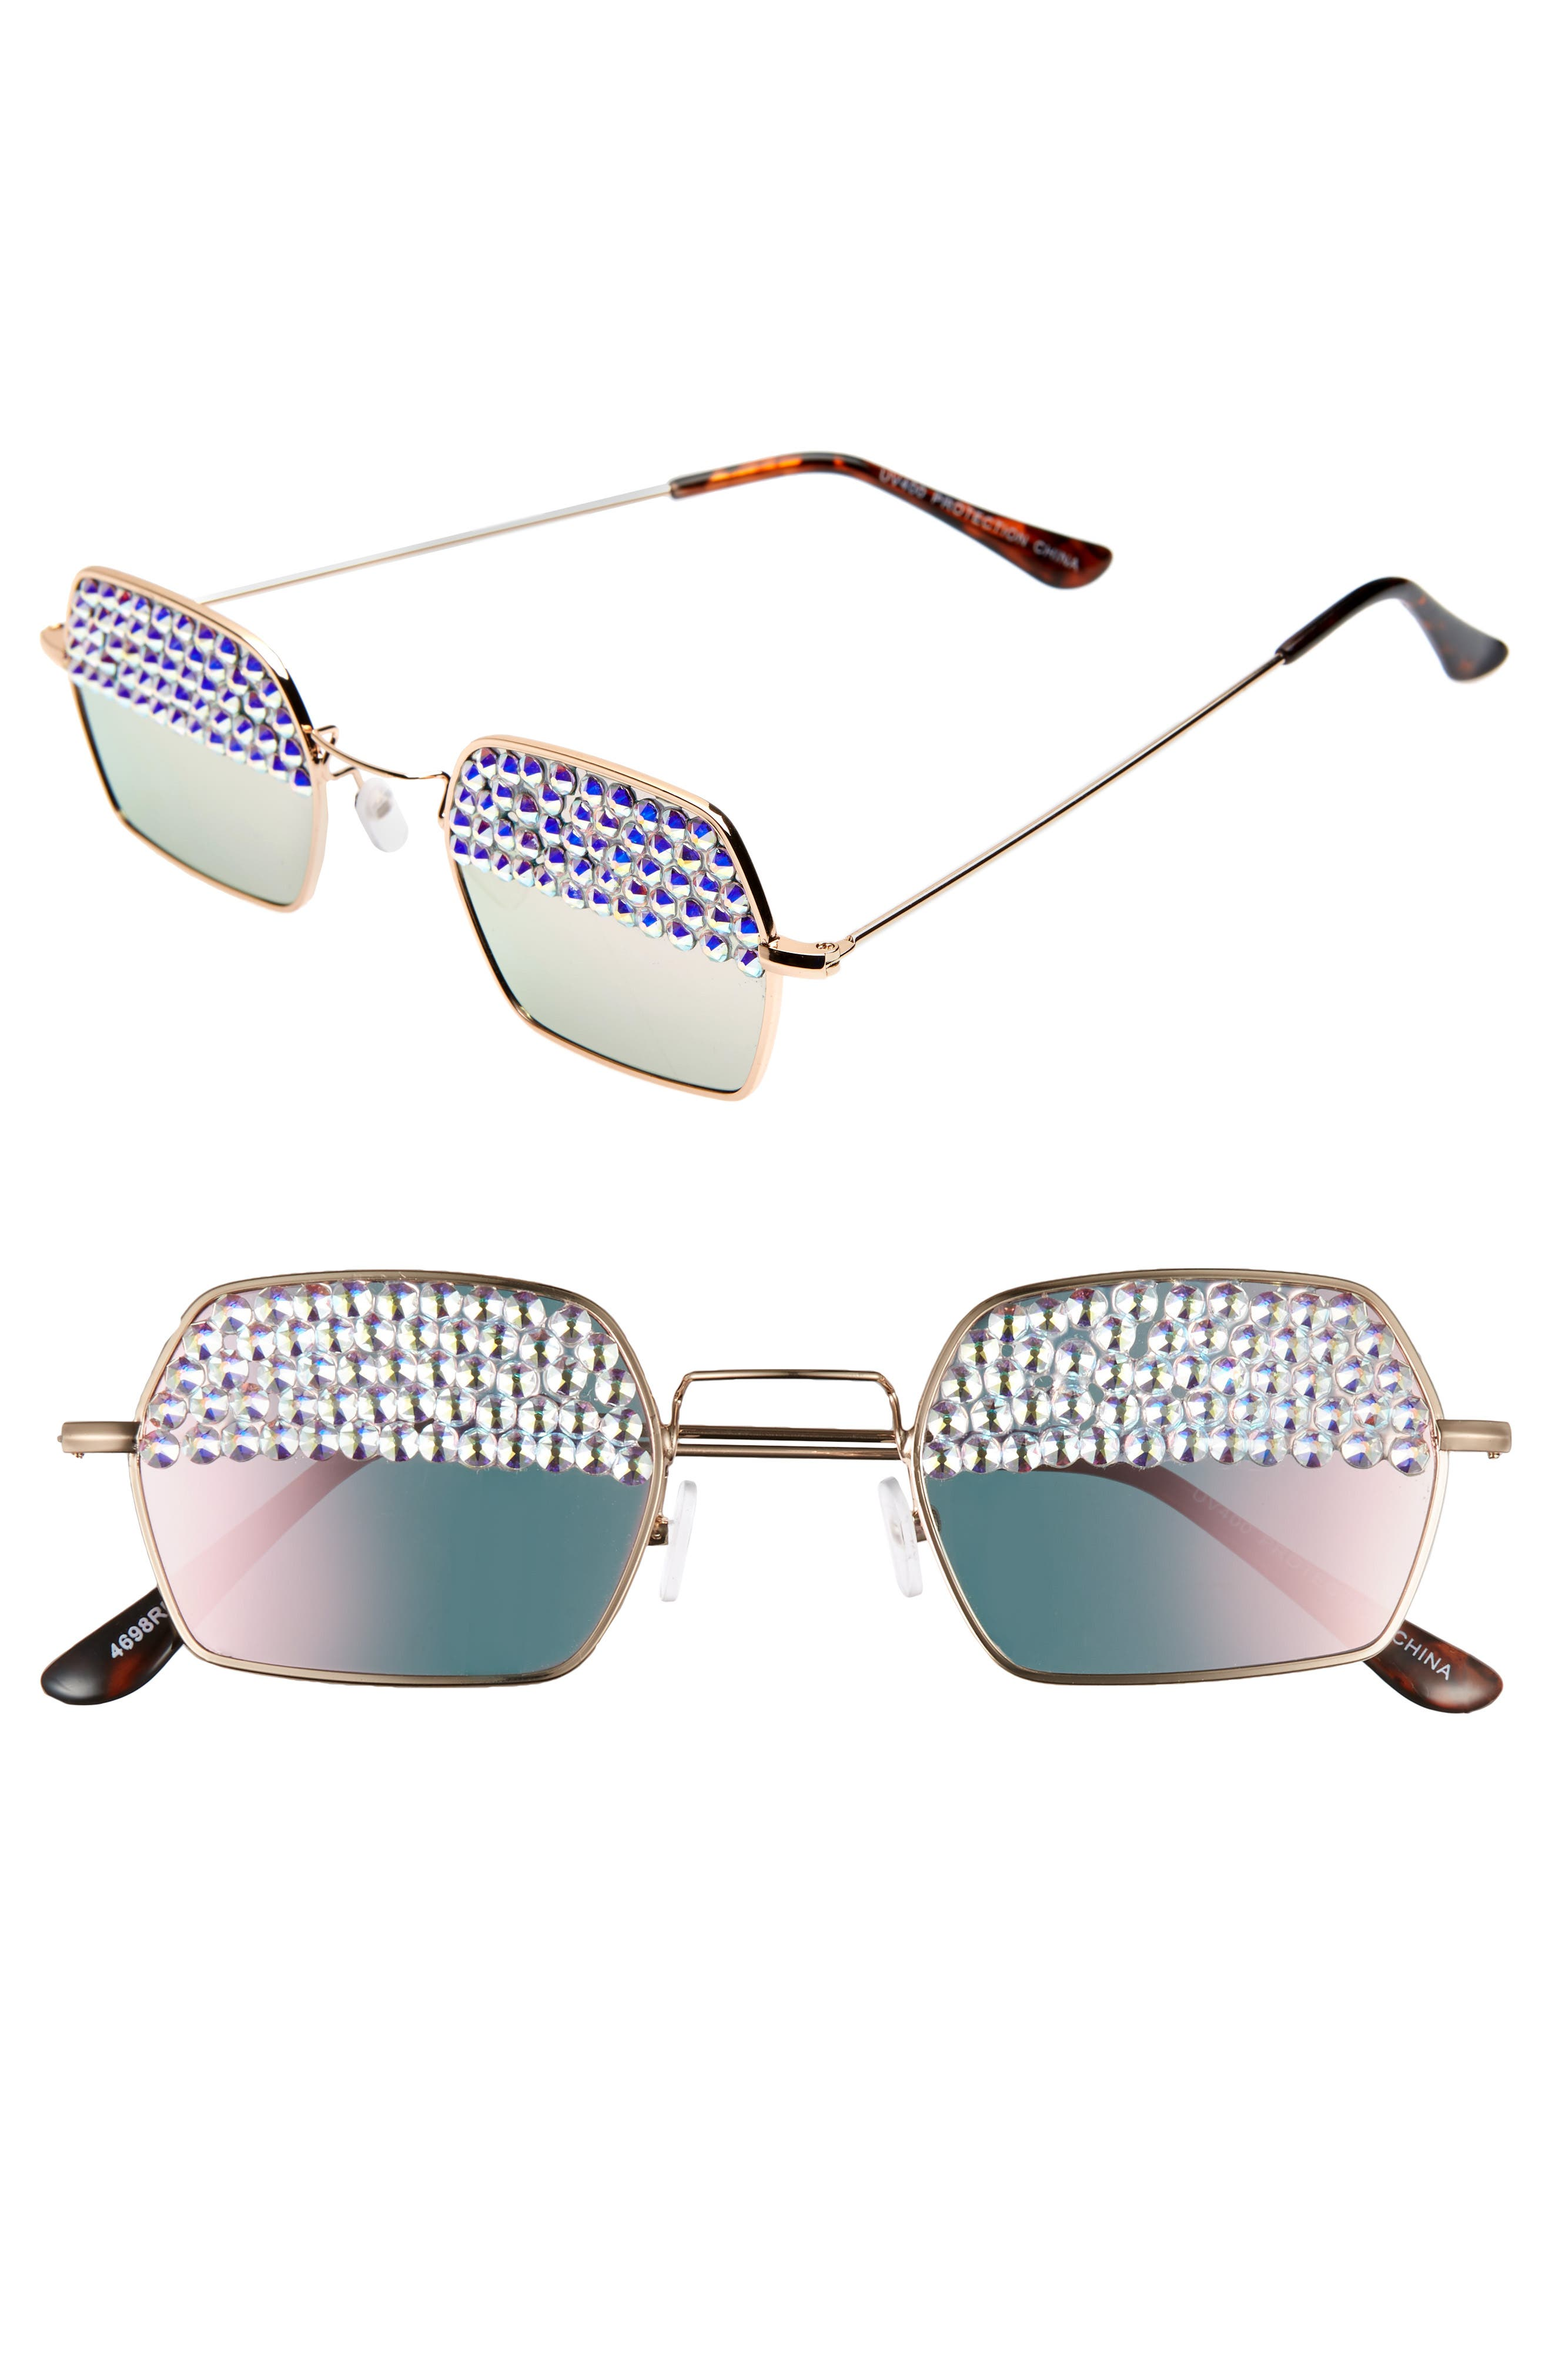 Rad + Refined Crystal Lens Square Sunglasses - Gold/ Crystal